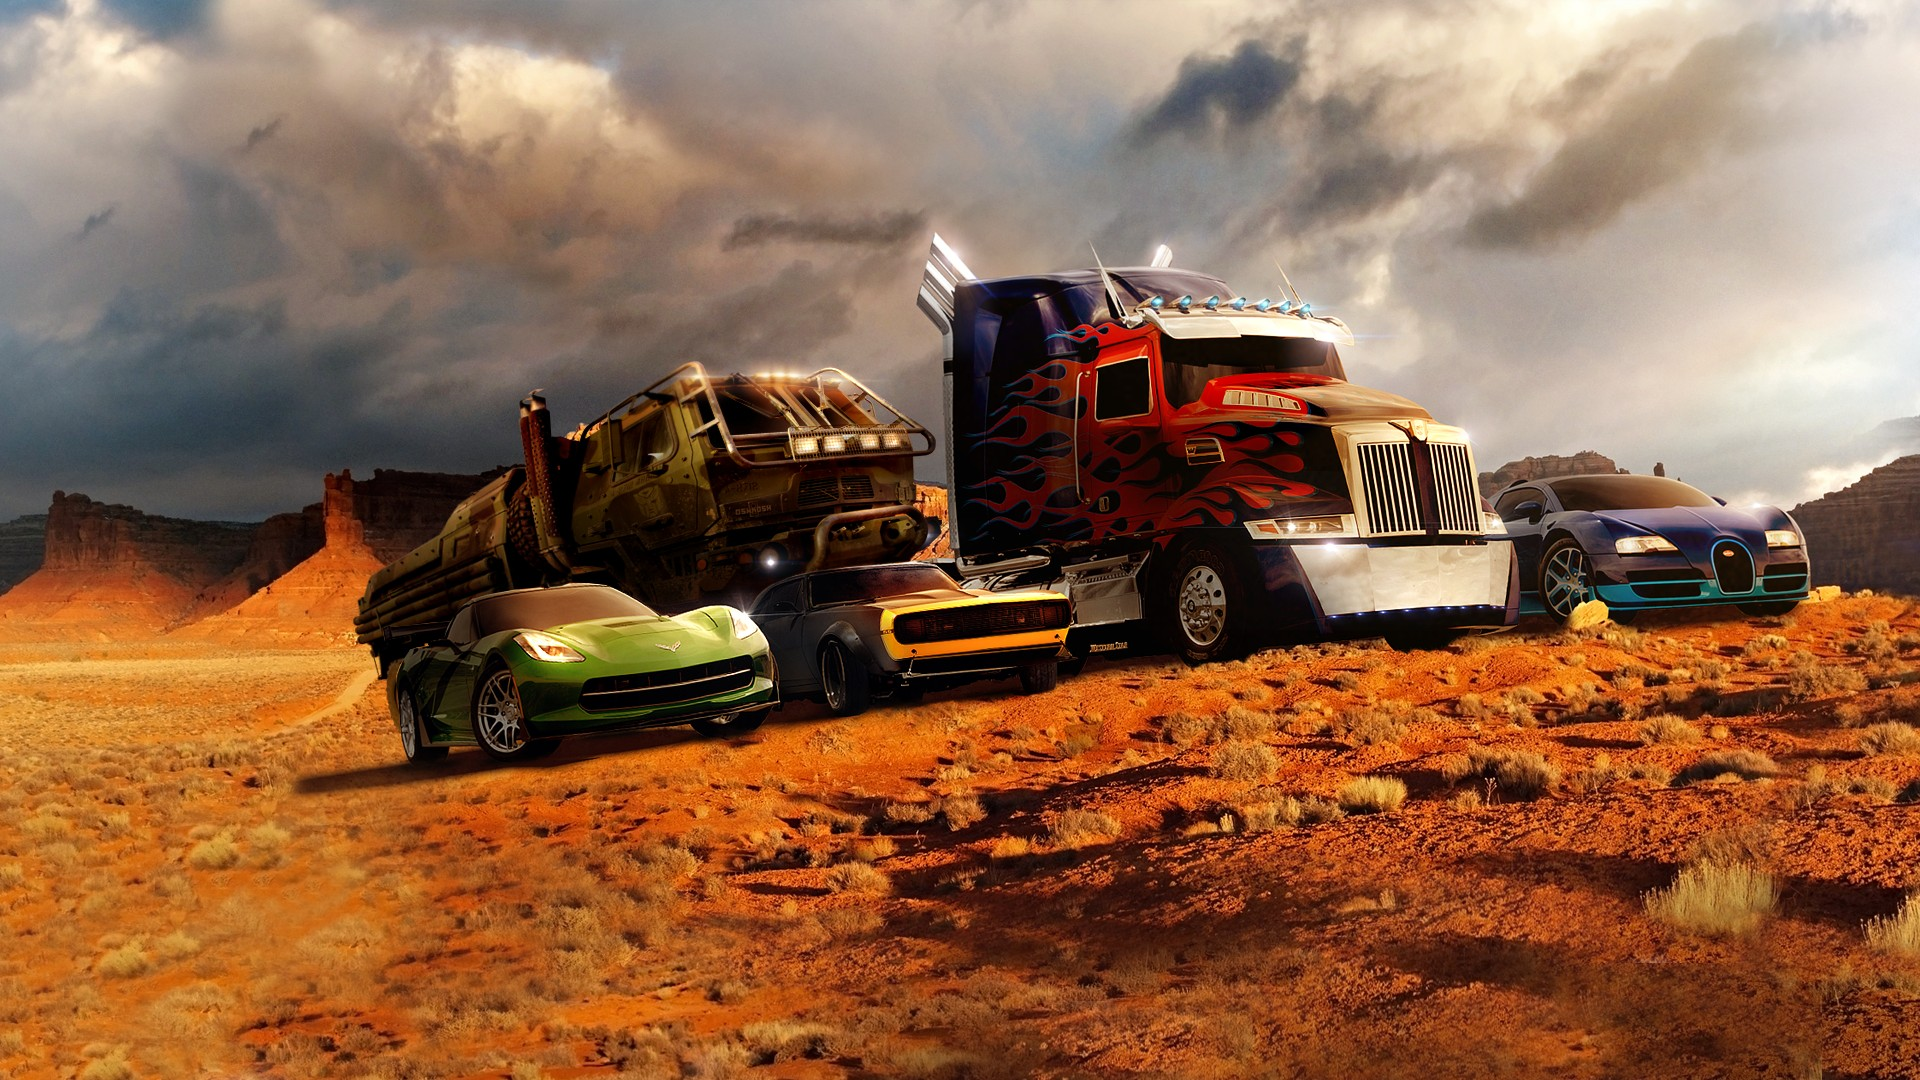 'Transformers 4' blasts to top of N. American box office